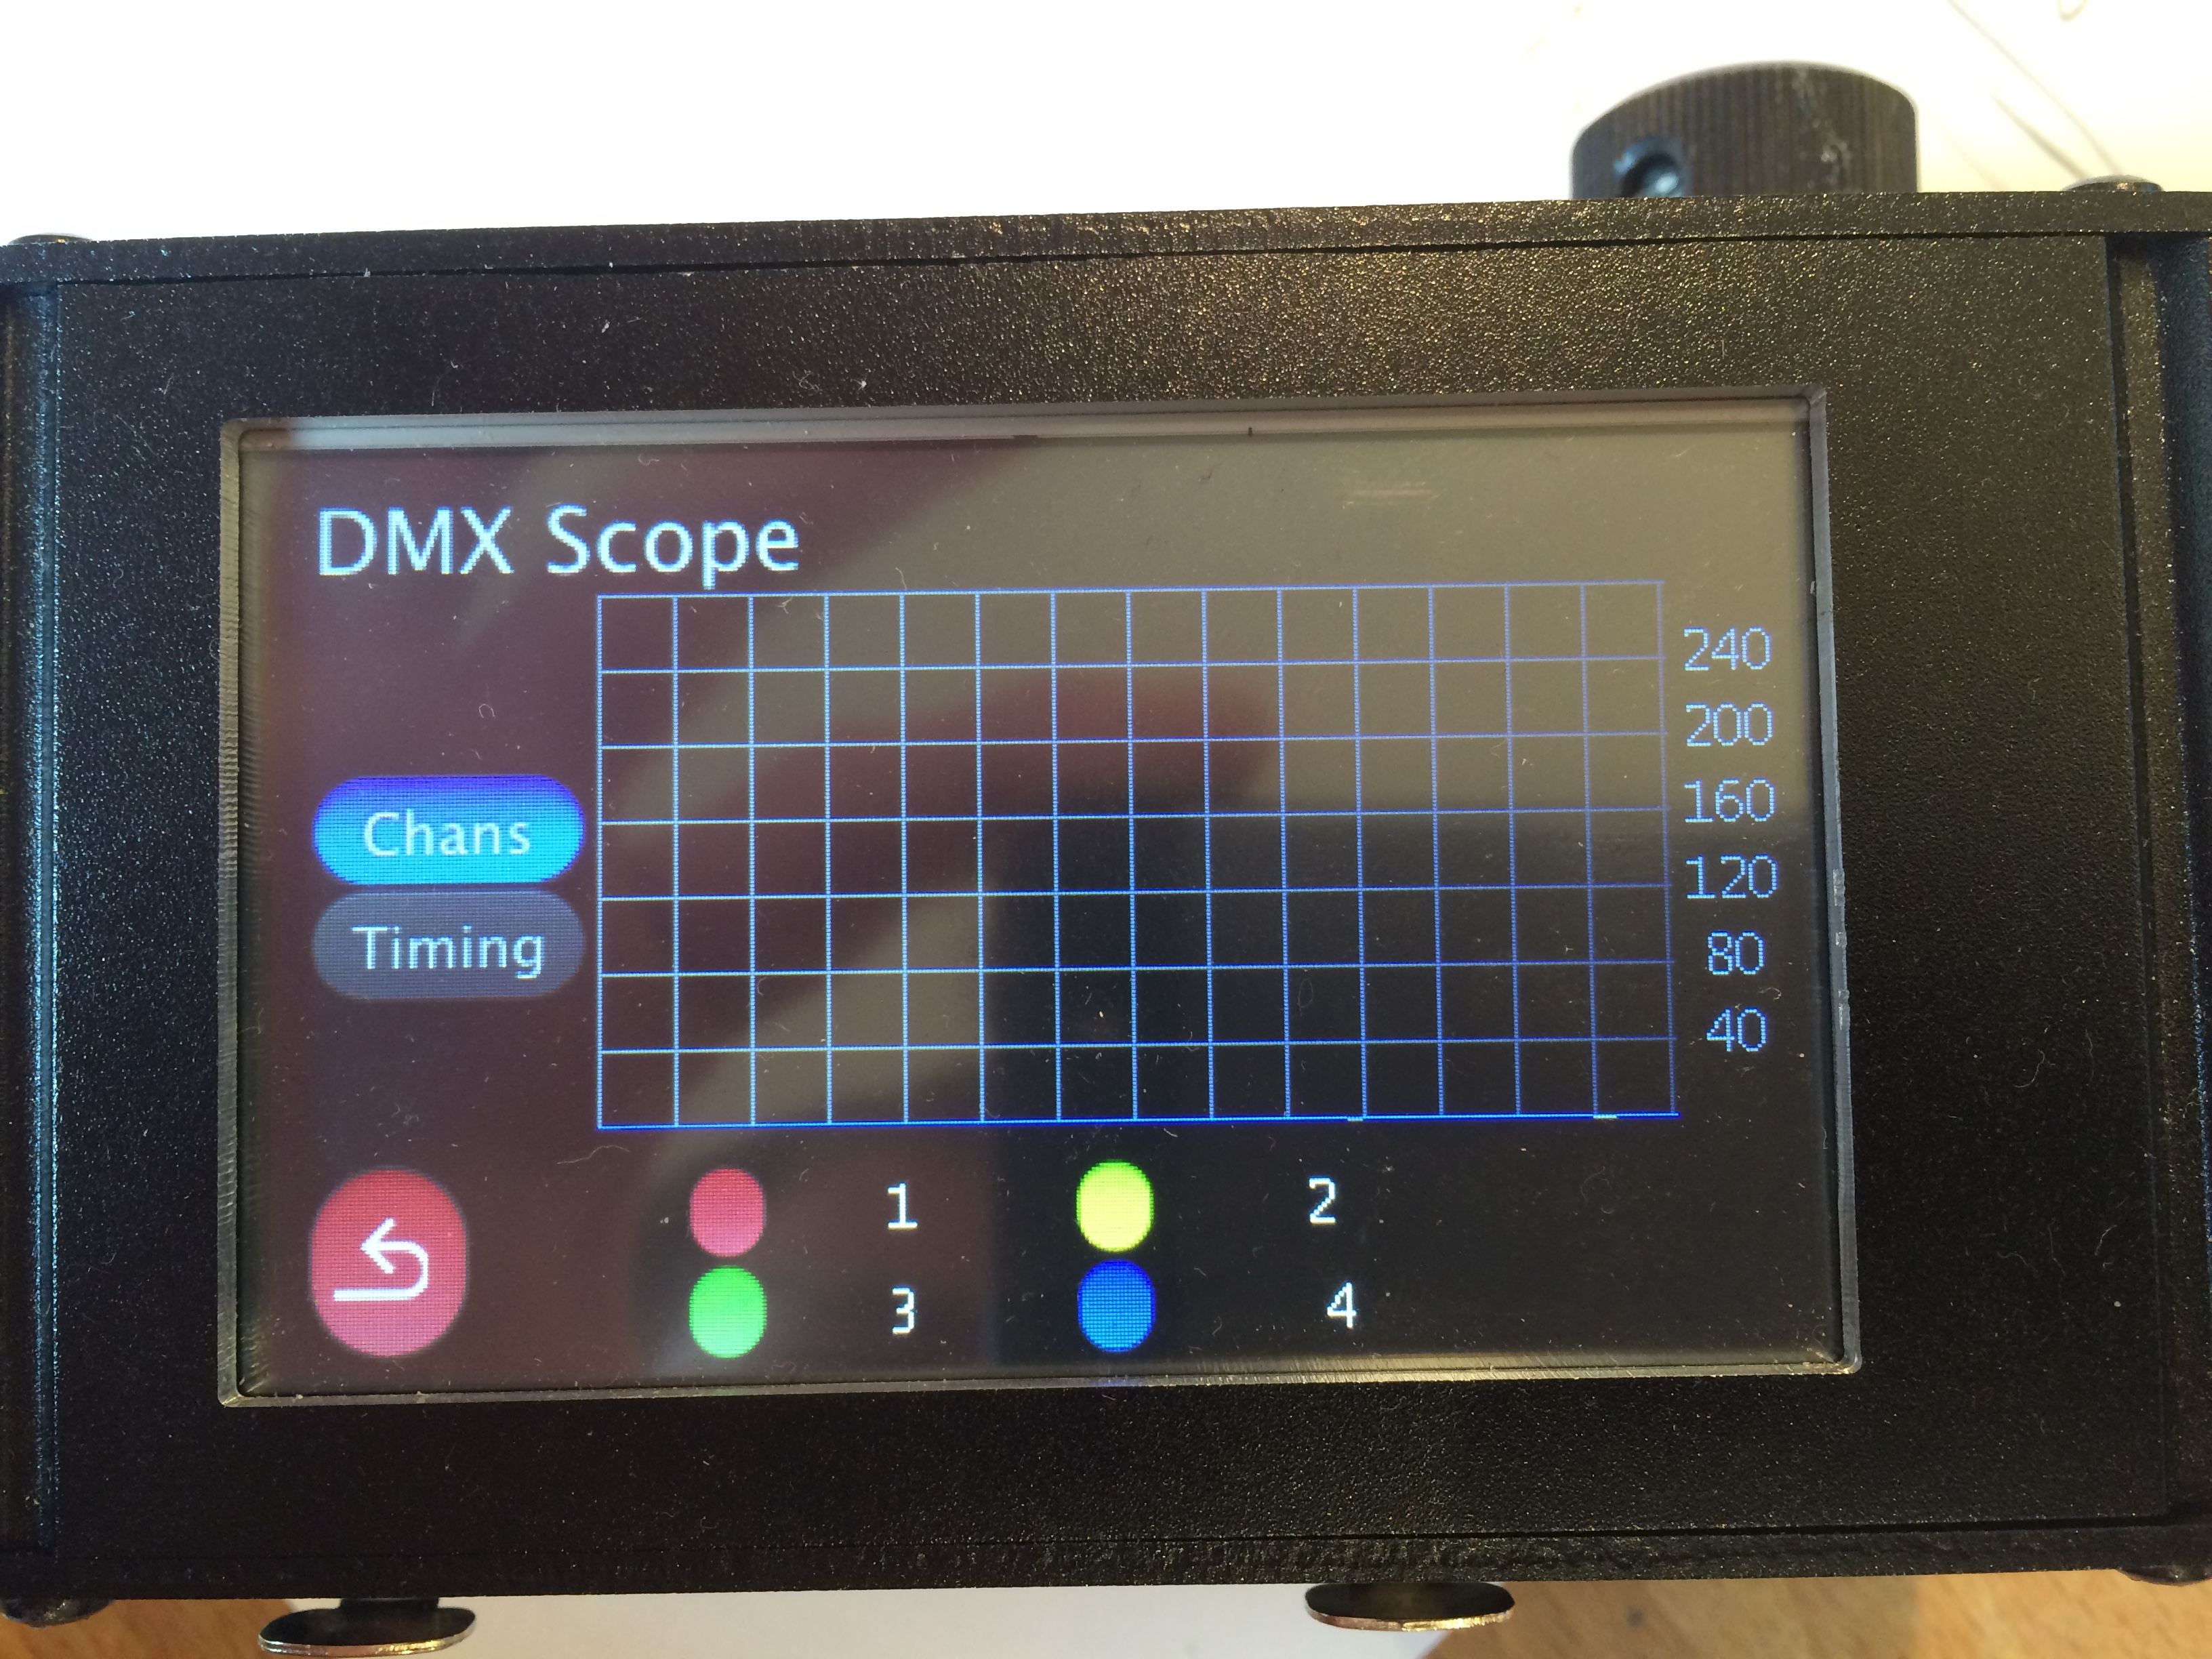 DMX Scope